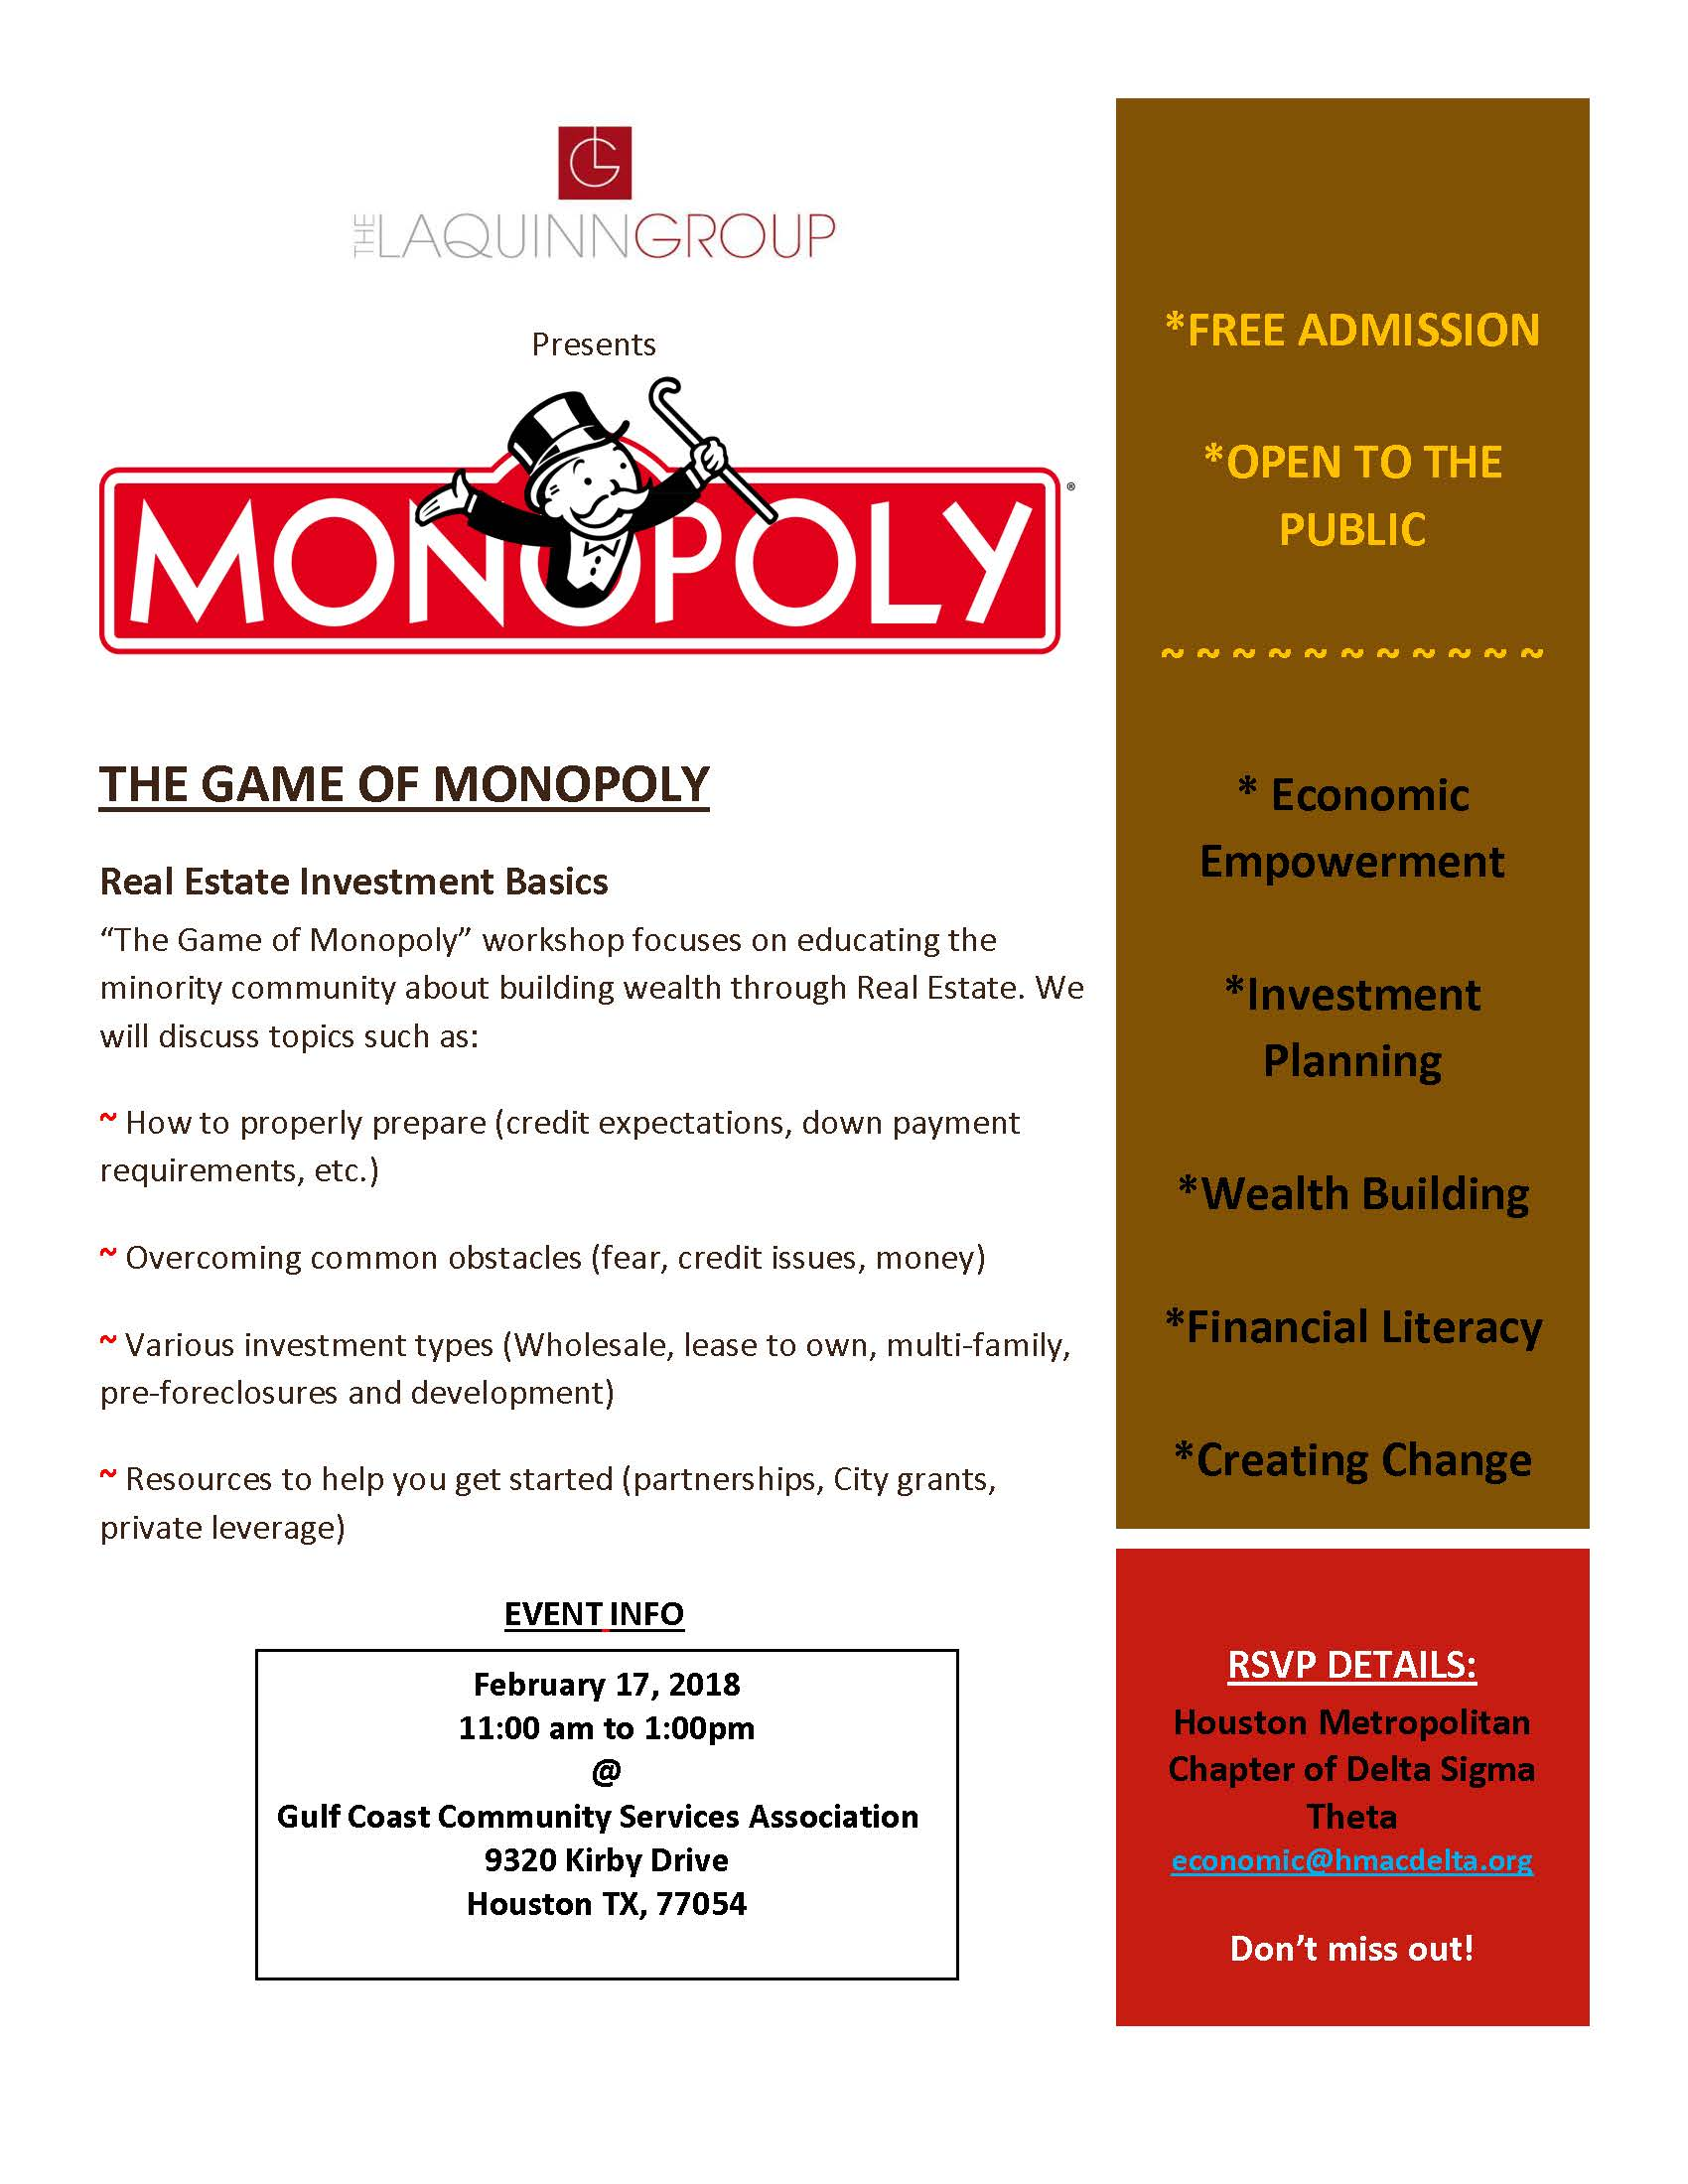 Economic Development Monopoly Game Flyer